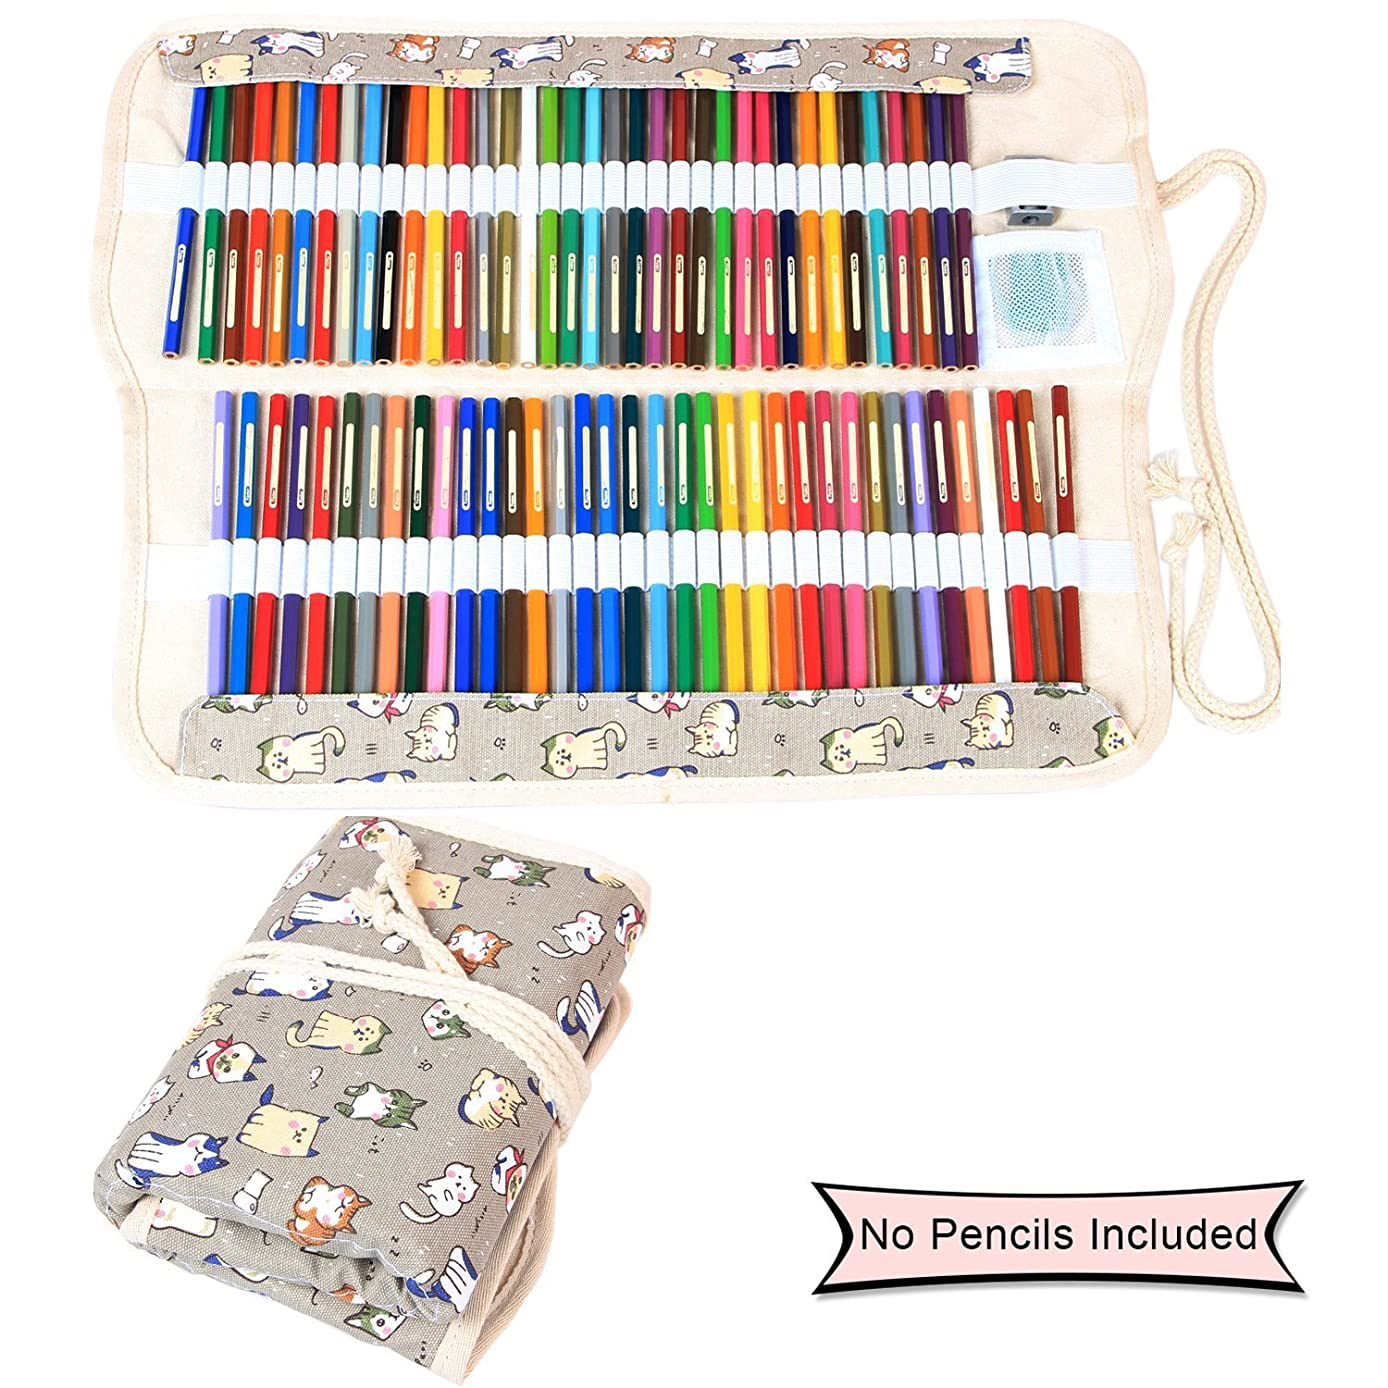 Damero Colored Pencils Case Wrap 100 Holes, Canvas Wrap Pencil Holder Storage Organizer Roll with Multi-purpose Pouch for Artist and Students, Cartoon Cats(NO Pencil Included)